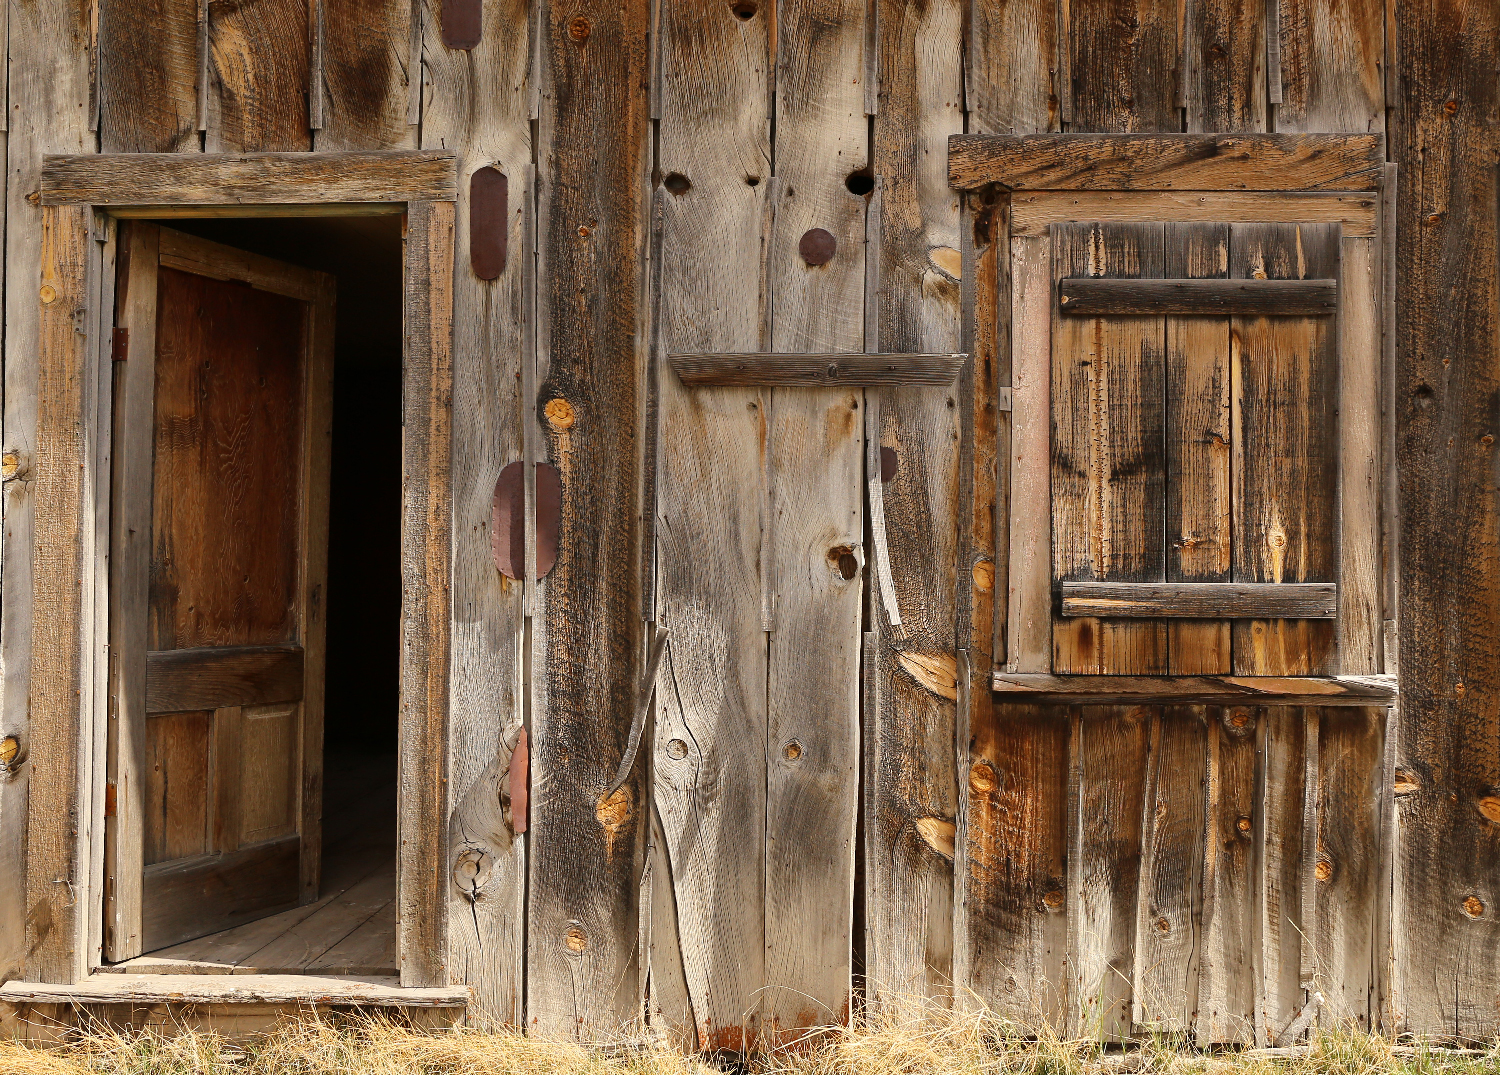 weathered pine boards metal patches wall window door old farmhouse